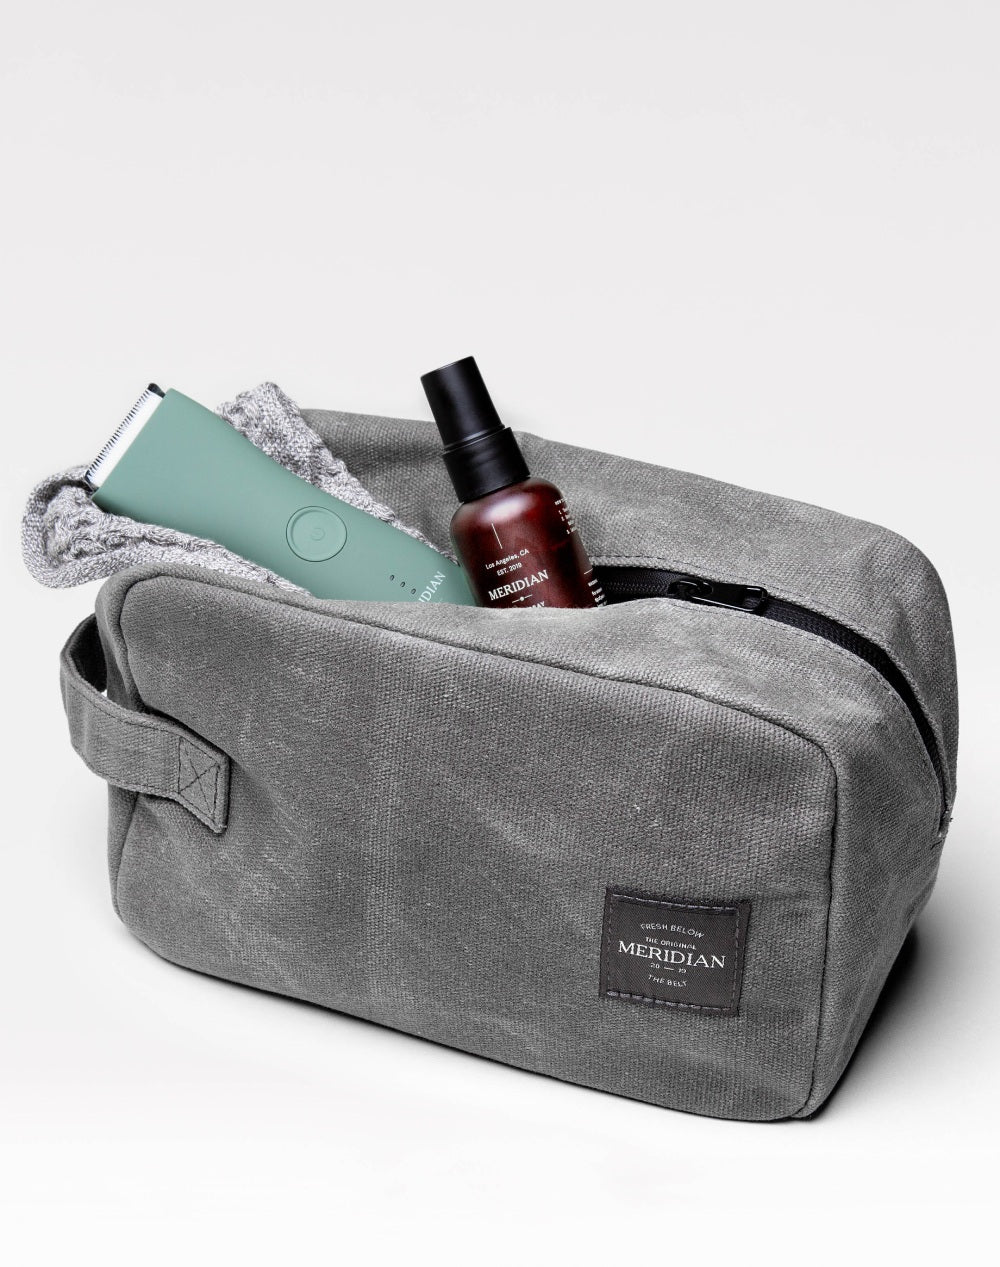 The To-Go Bag